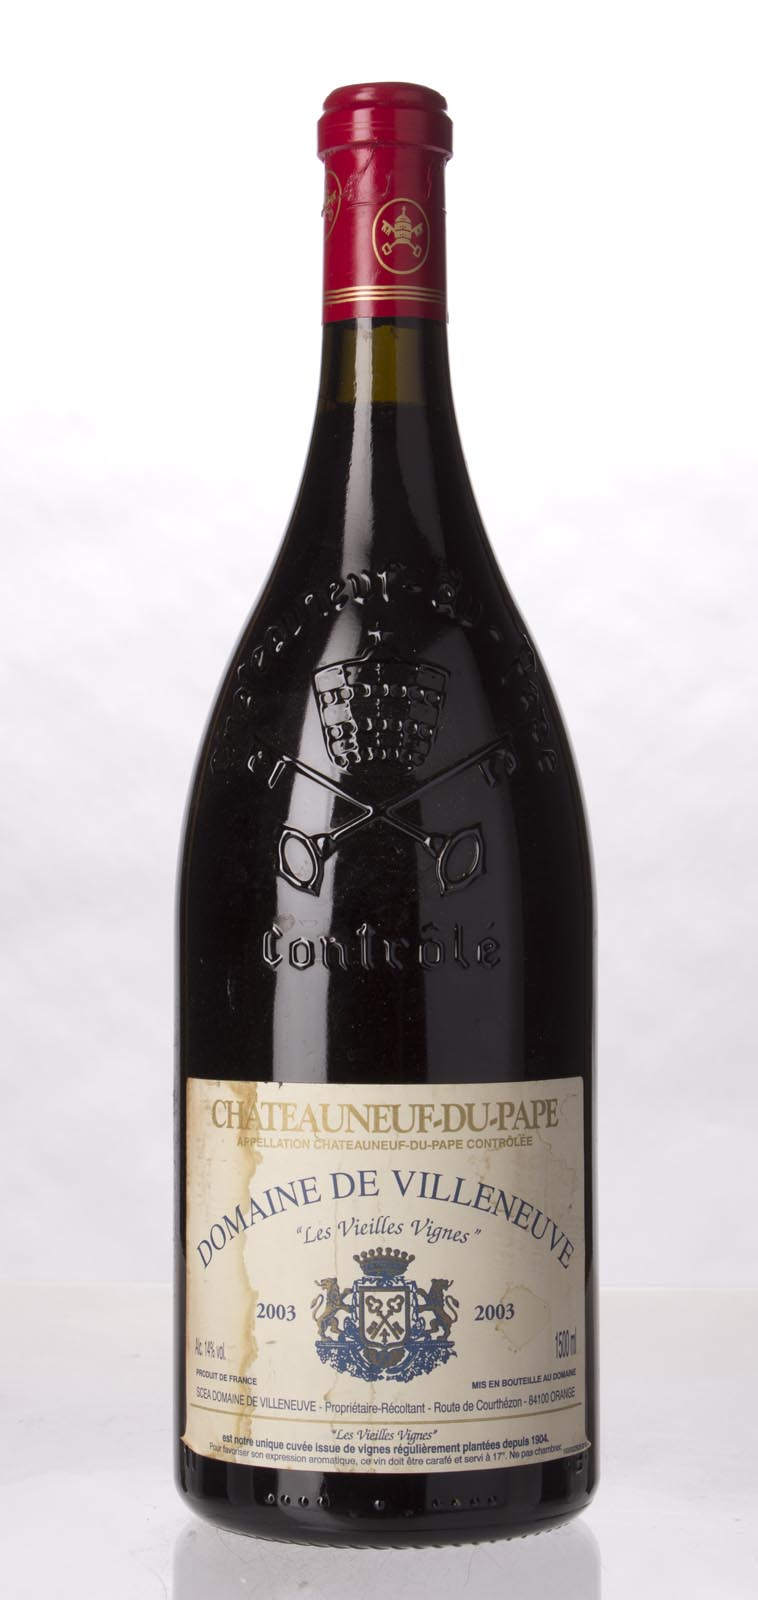 Domaine de Villeneuve Chateauneuf du Pape Vieilles Vignes 2003, 1.5L (WA91) from The BPW - Merchants of rare and fine wines.